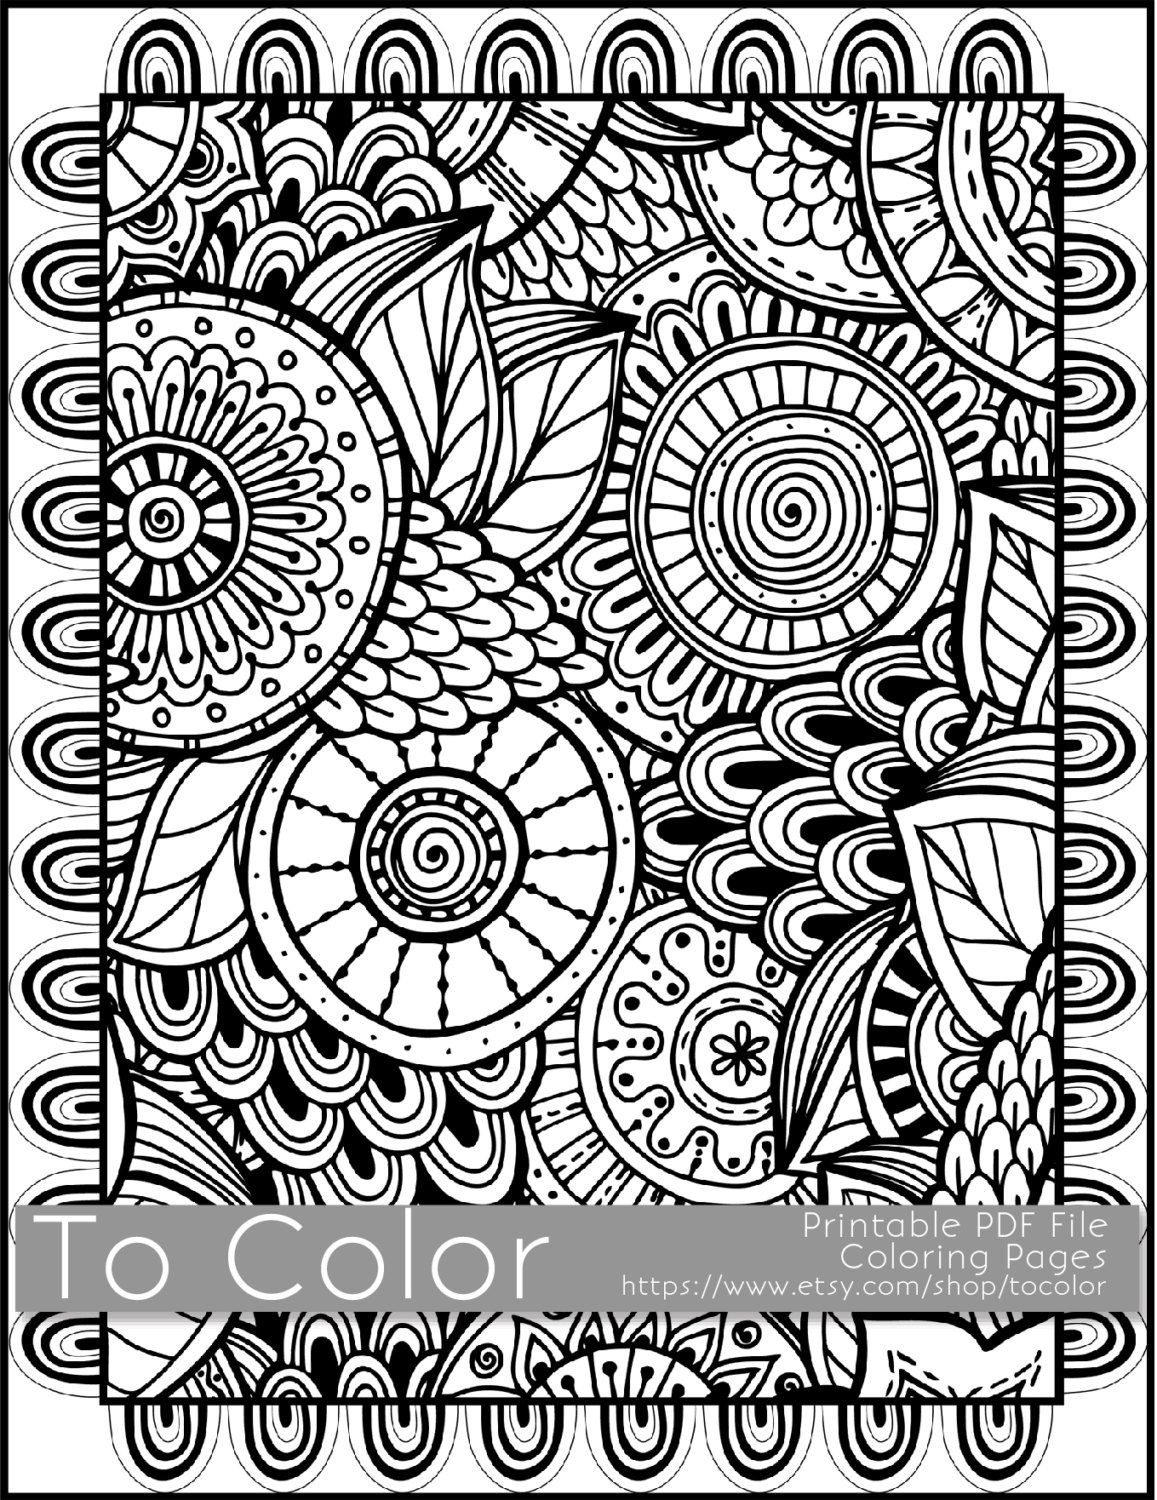 Printable Coloring Pages For Adults All Over Large Doodle